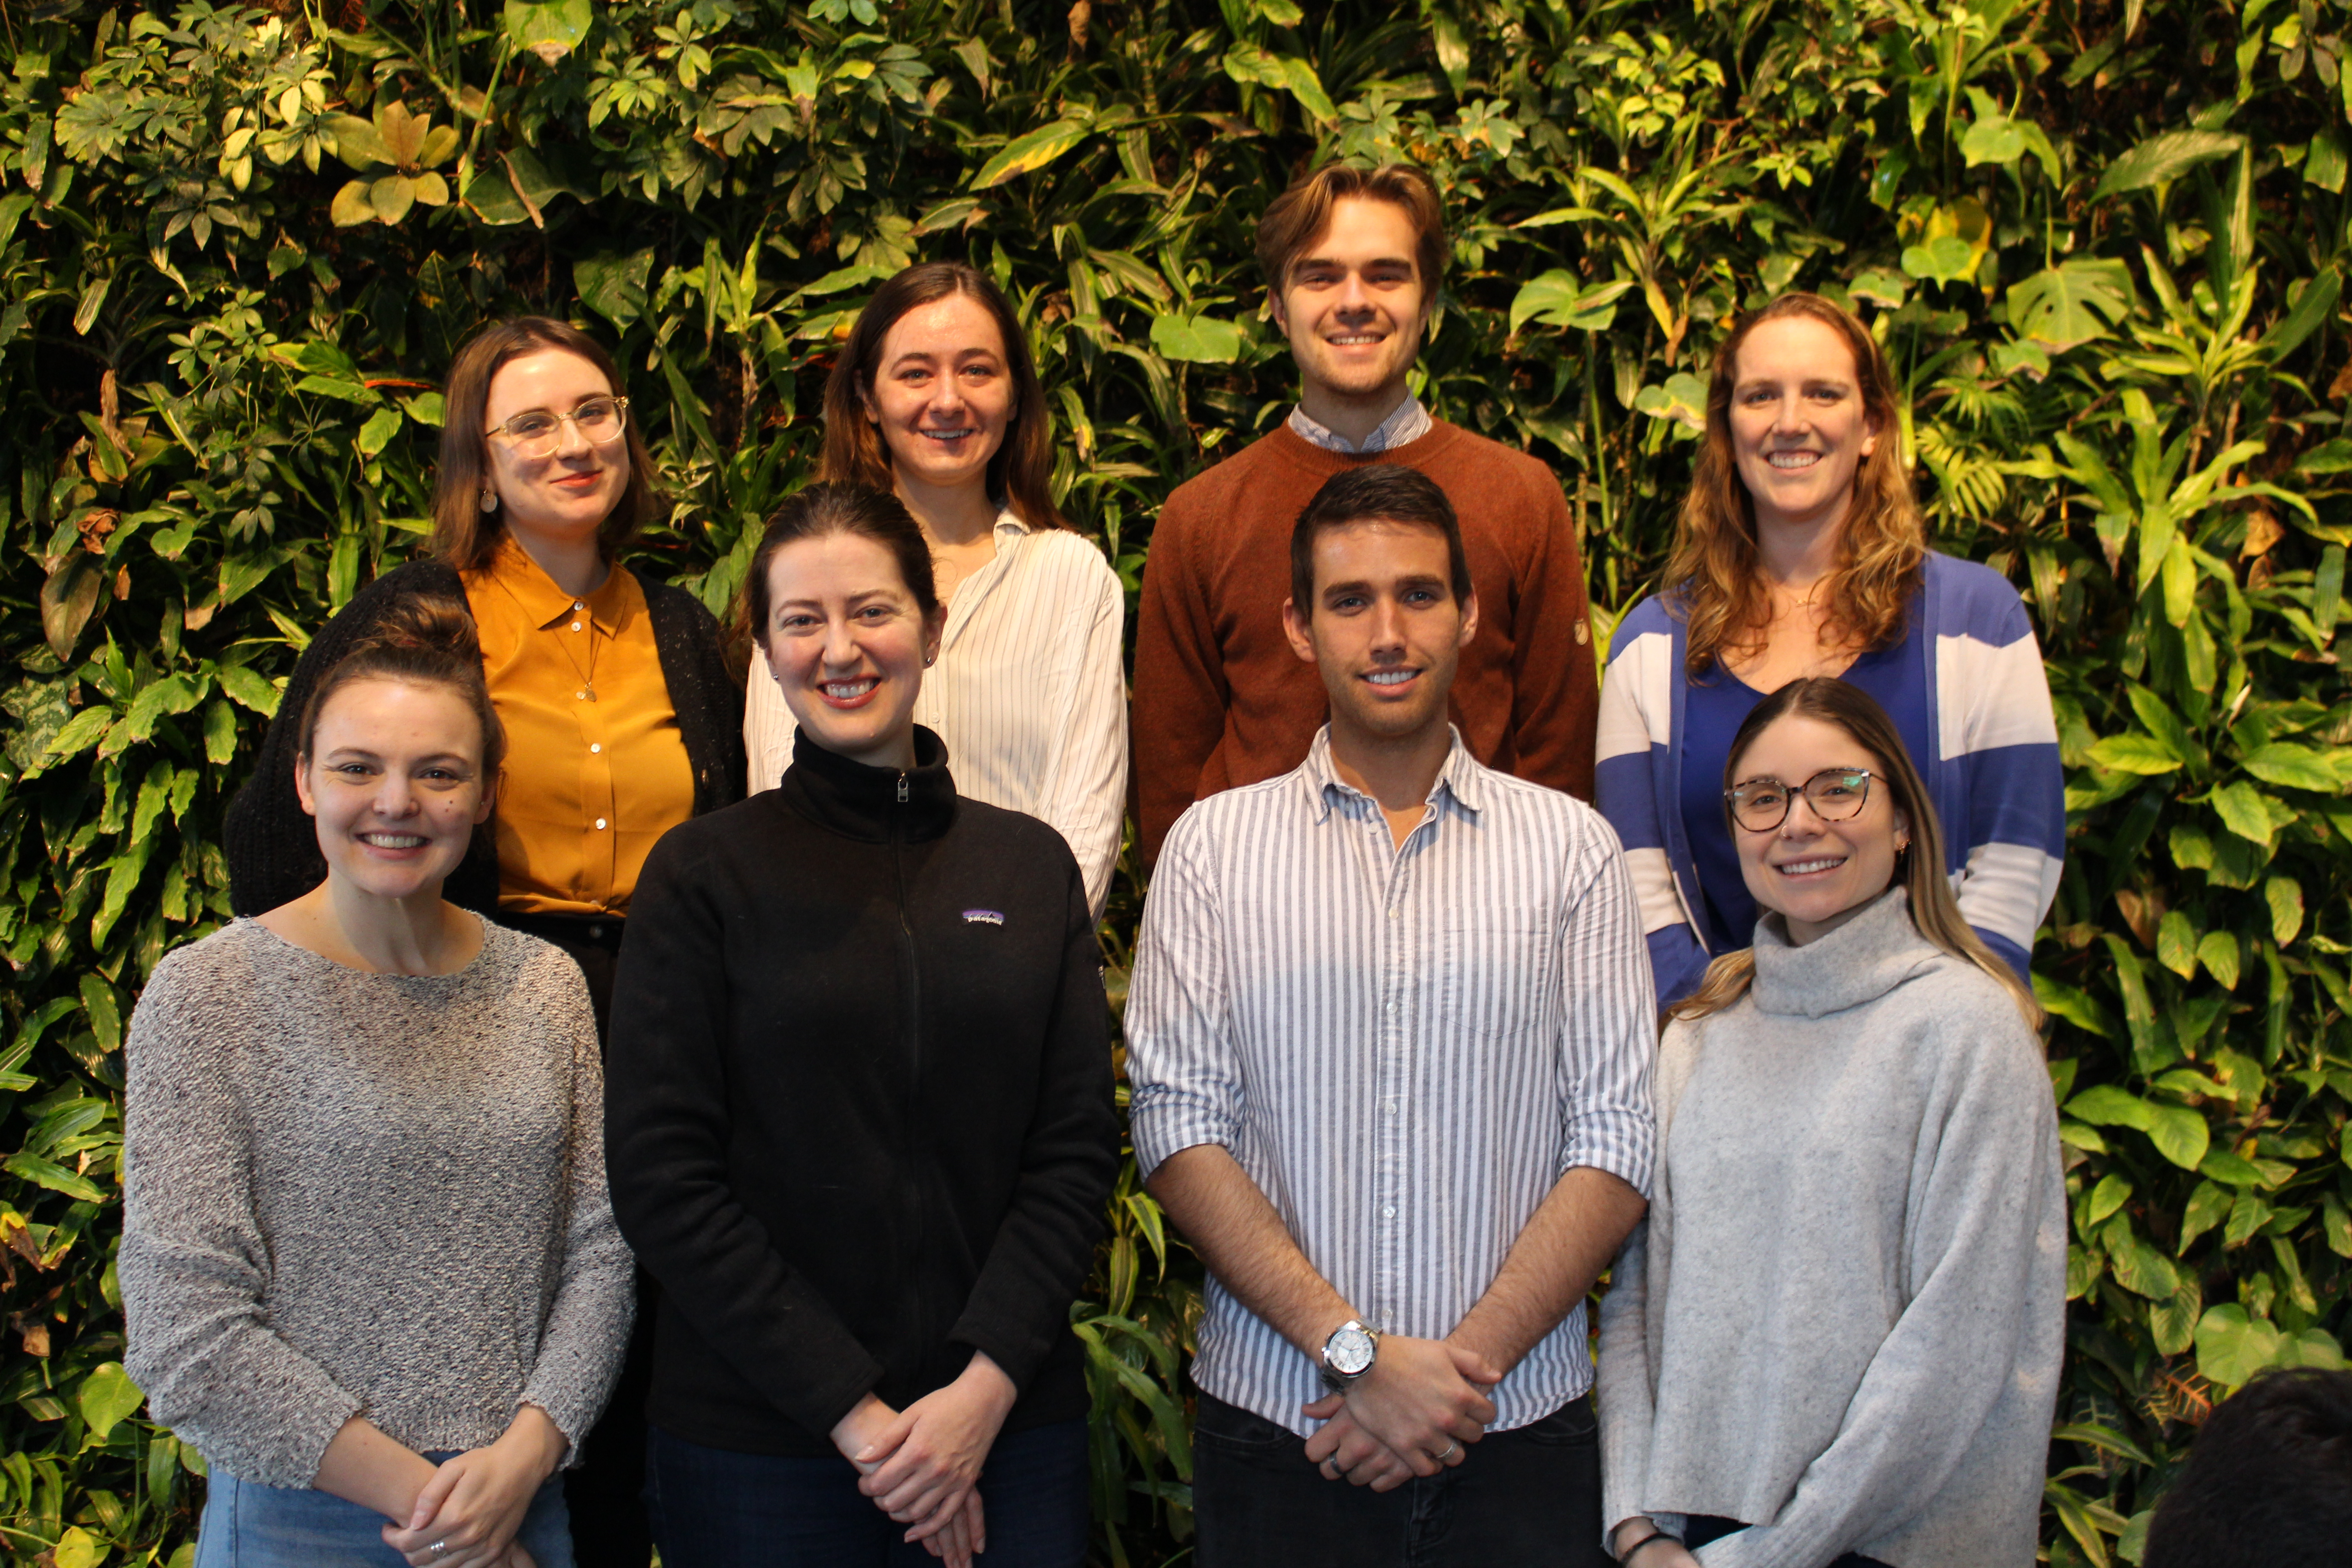 Students in the Master of Science in Environmental Sustainability program who have been awarded the Smart Prosperity Institute (SPI) Fellowship, or a SPI Research Assistantship. Top row from the left: Natalie Stutt-Wiebe, Catherine Christofferson, Andrew